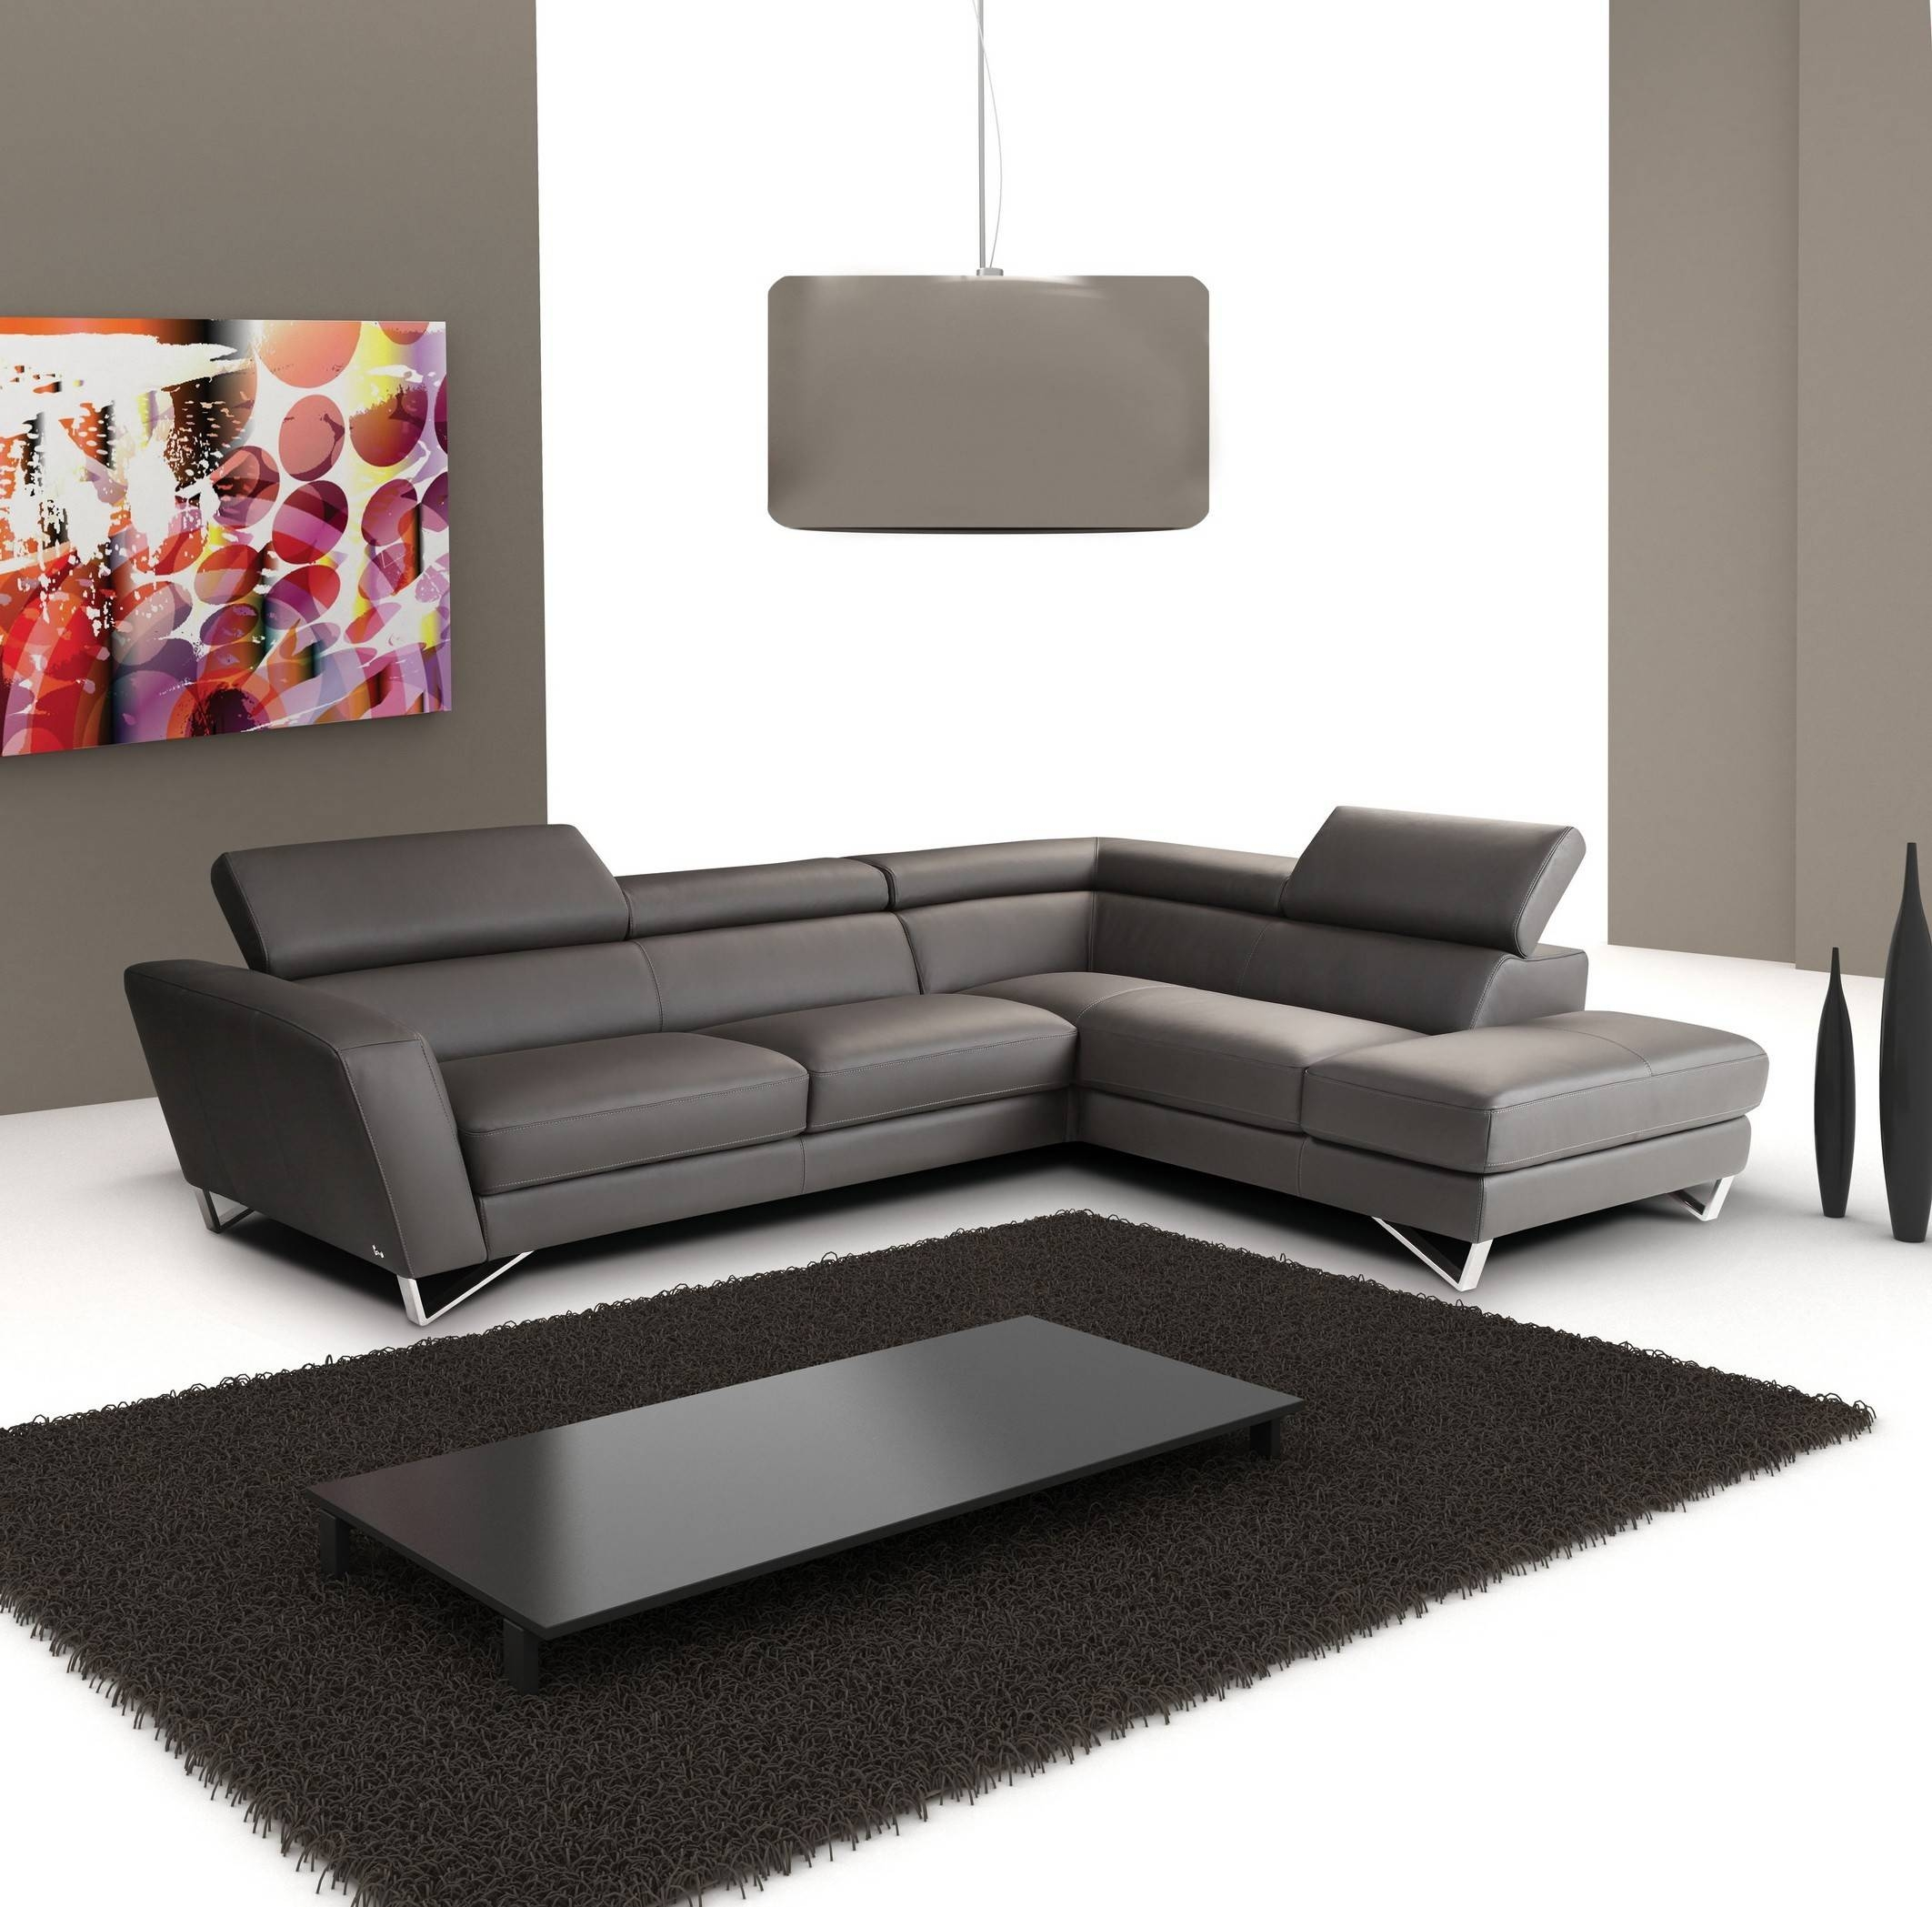 Furniture: Amusing Furniture Decorated L Shaped Sleeper Sofa For in Corner Sleeper Sofas (Image 10 of 15)